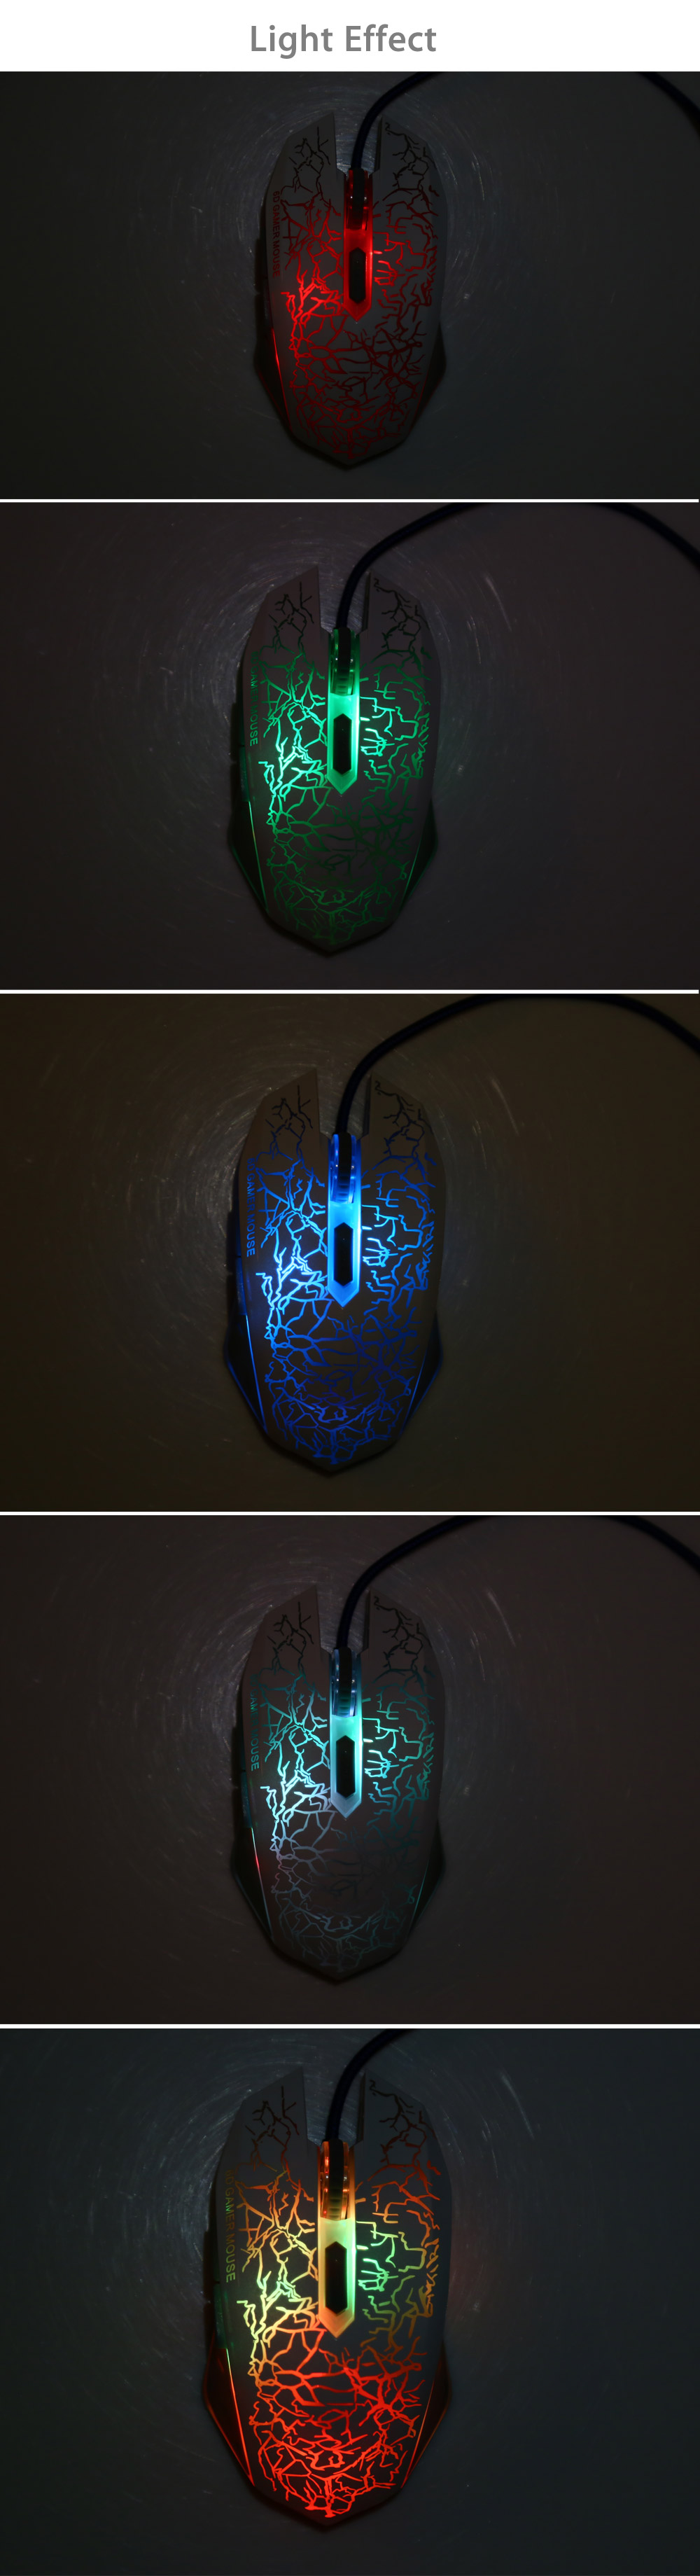 6D USB Wired Gaming Mouse with Optical Sensor